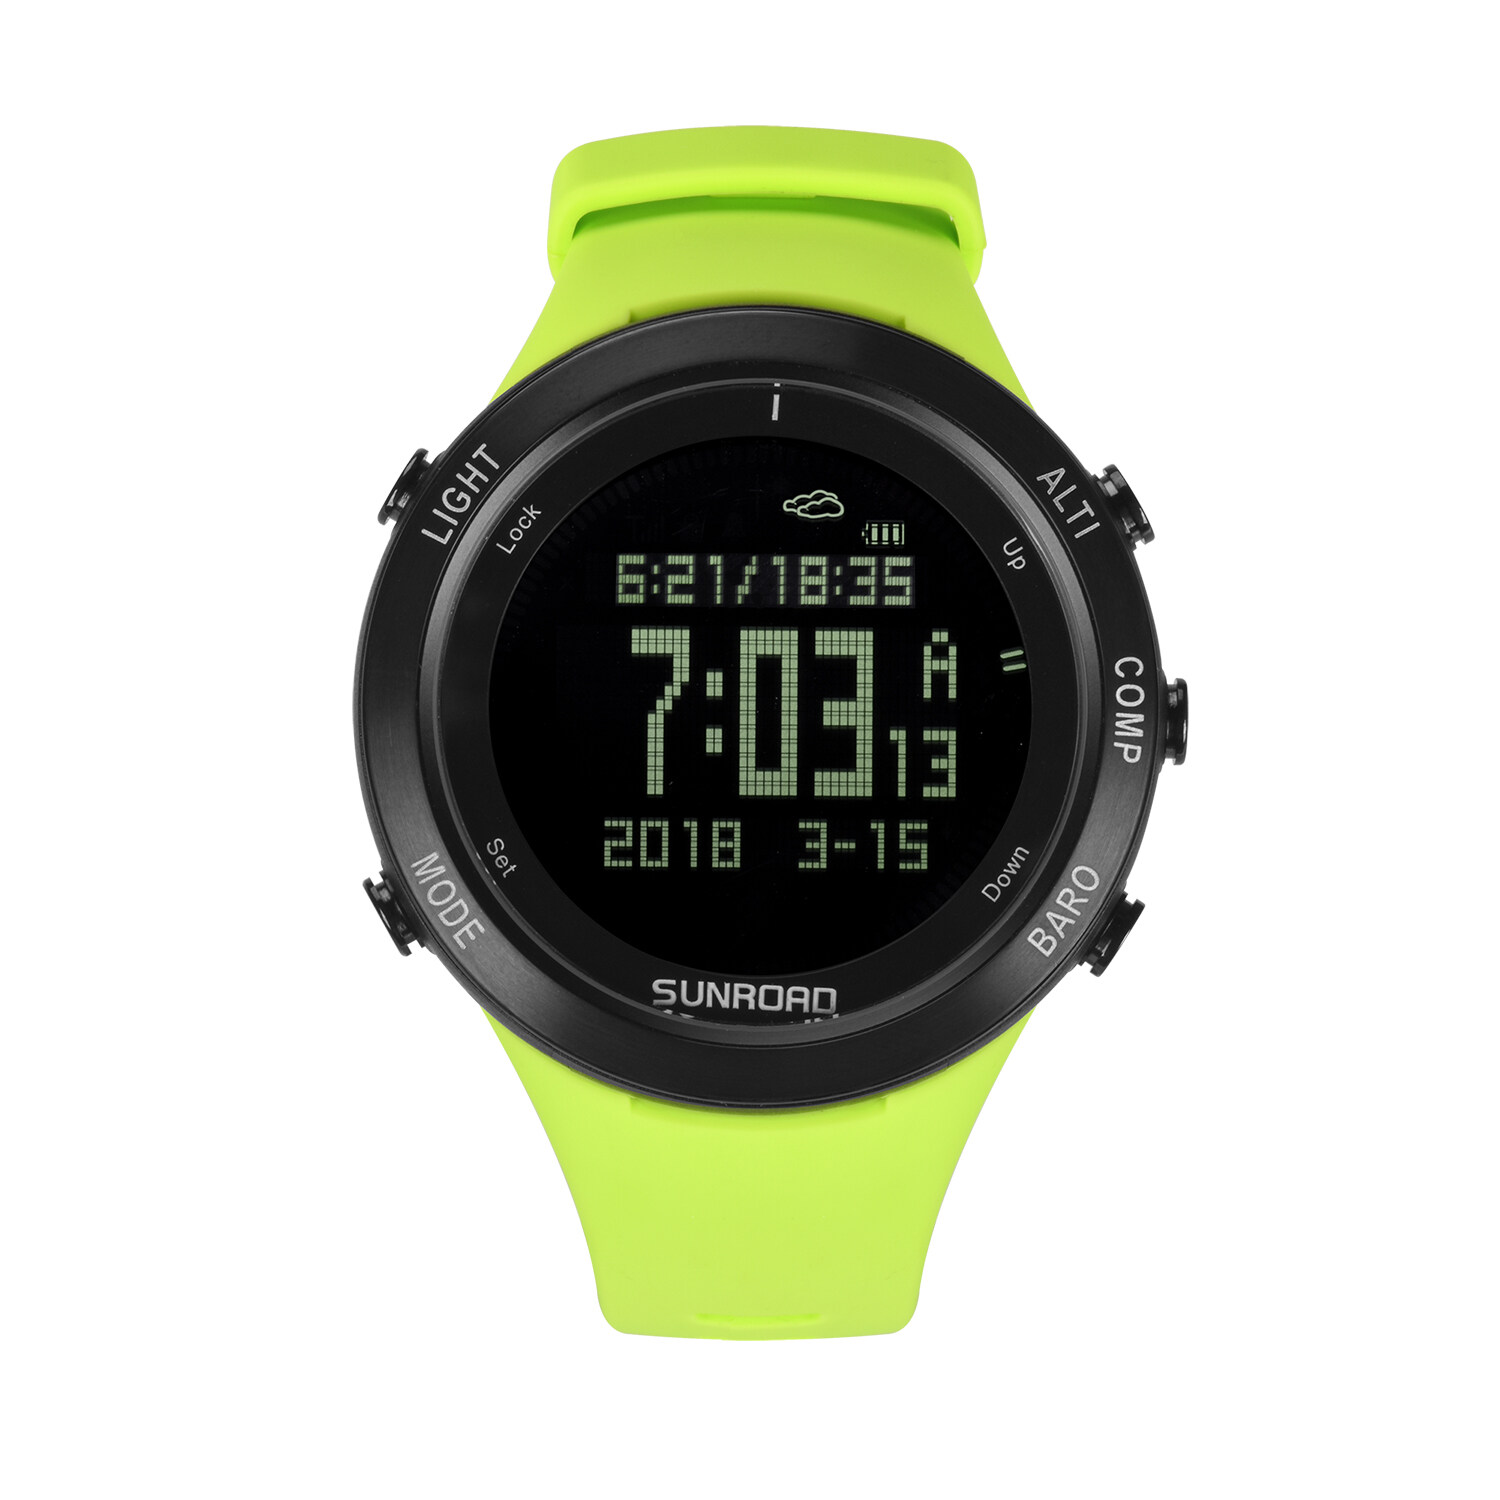 Sunroad heart rate outdoor sports watch with Pedometer, altimeter, climb data, hiking, camping, traveling watch waterproof 1